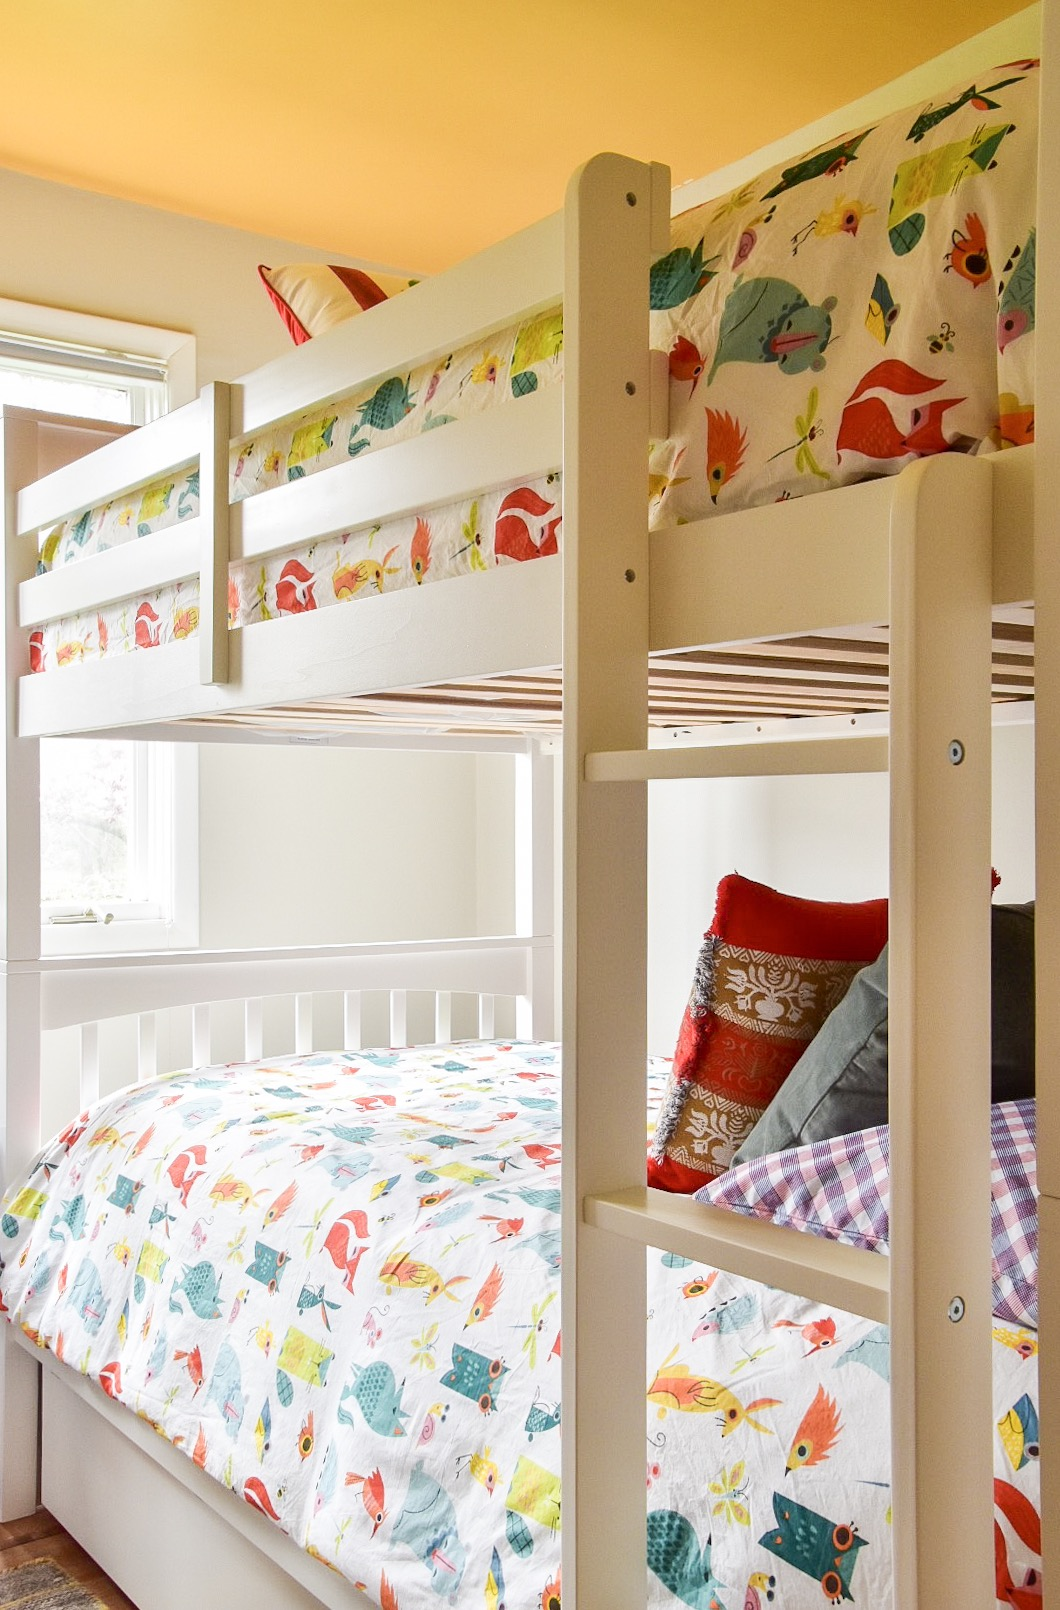 Bunk beds and Yellow painted ceiling in Kids Room Makeover by The Rath Project